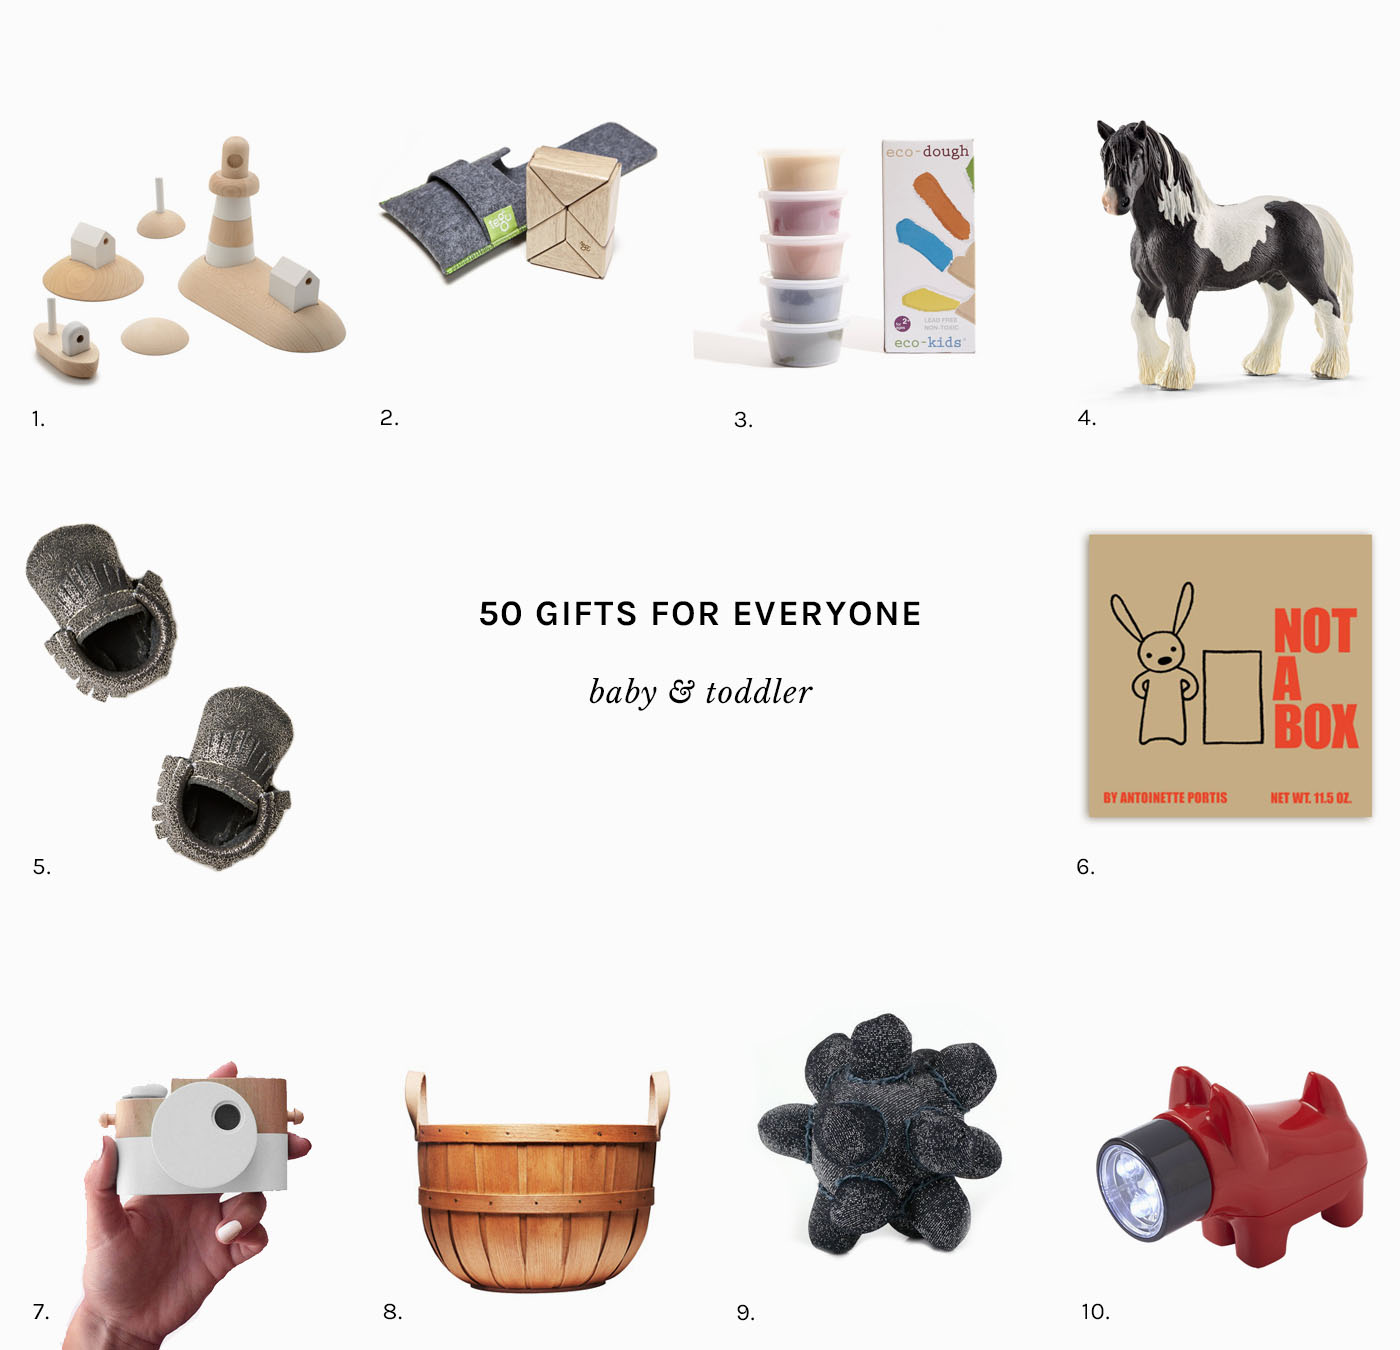 Perfect gifts for the curious babies & toddlers in your life. Part of a well-curated gift guide for everyone in your life.